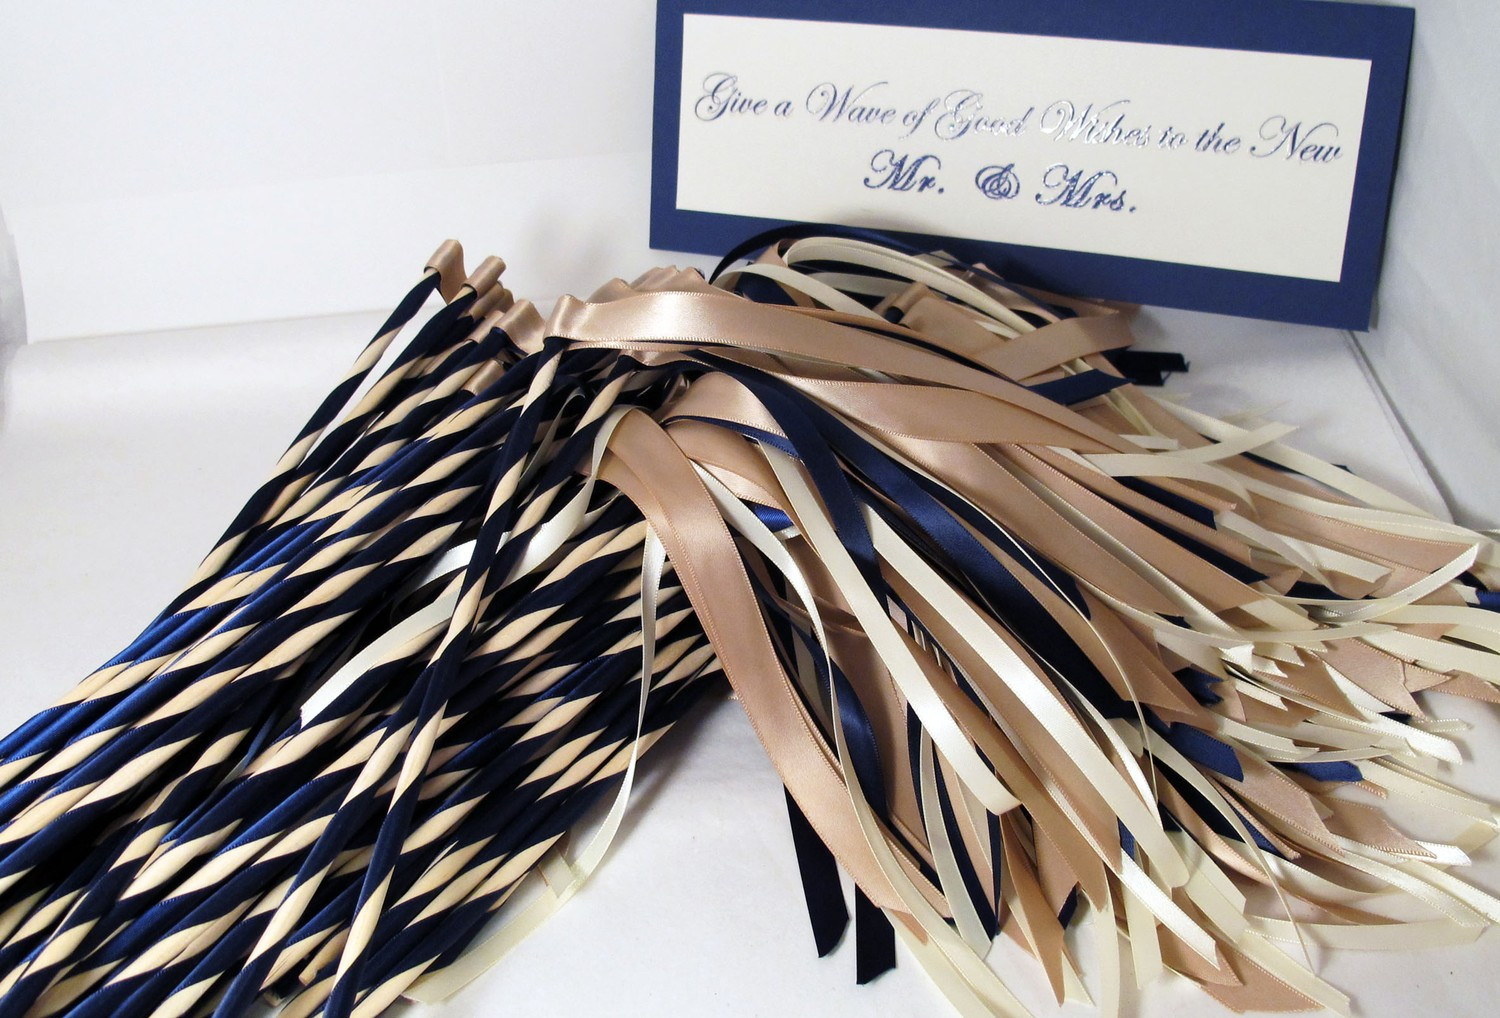 granting your wedding wand wish wedding send off ideas Display the wands on a table and ask guests at the end of the night to wave for a fabulous send off